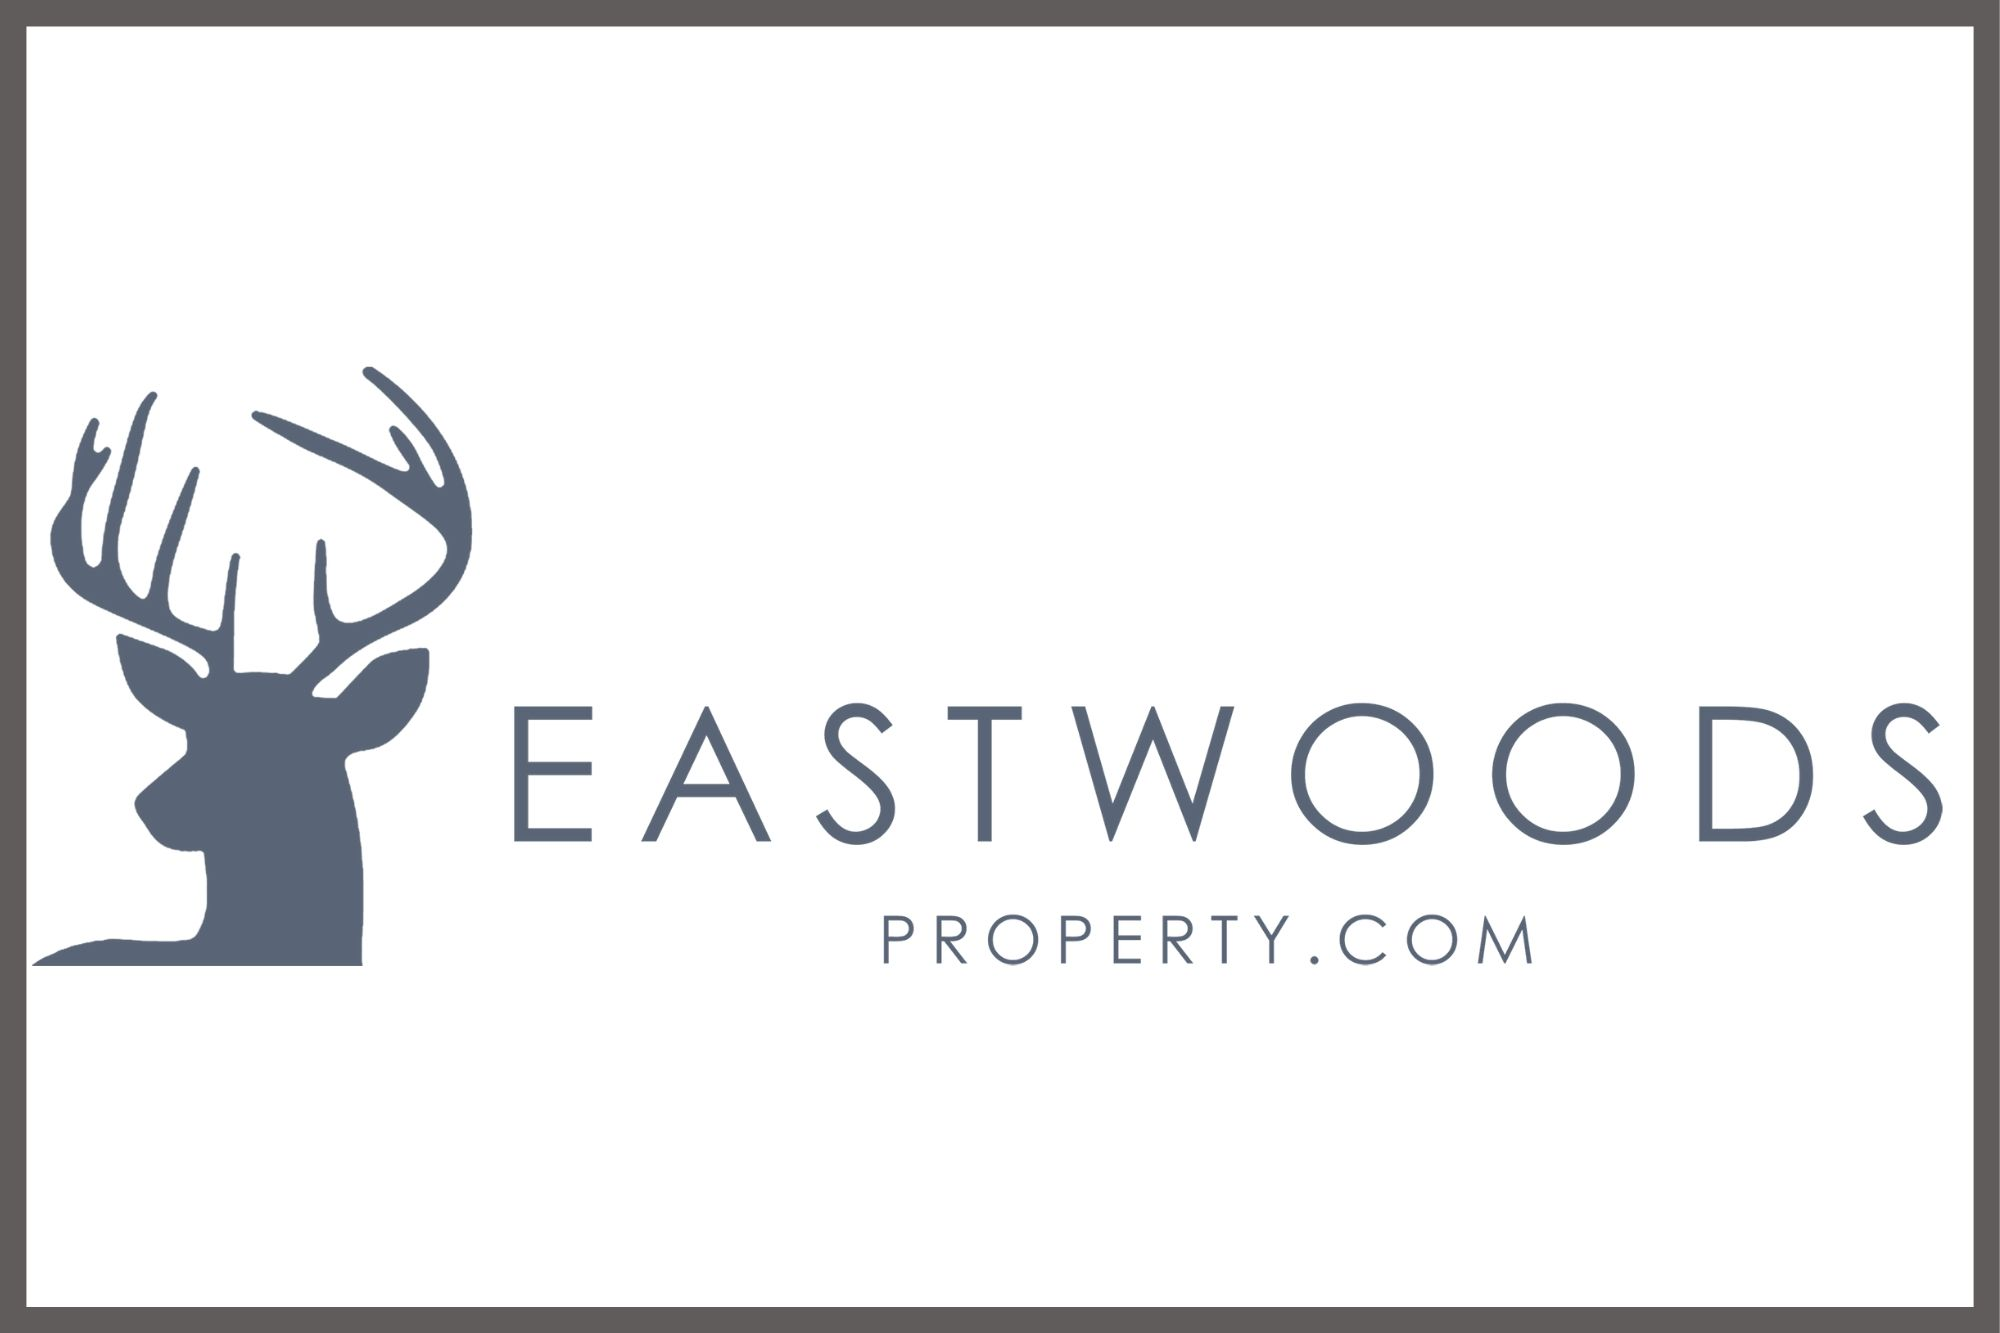 Eastwoods Property